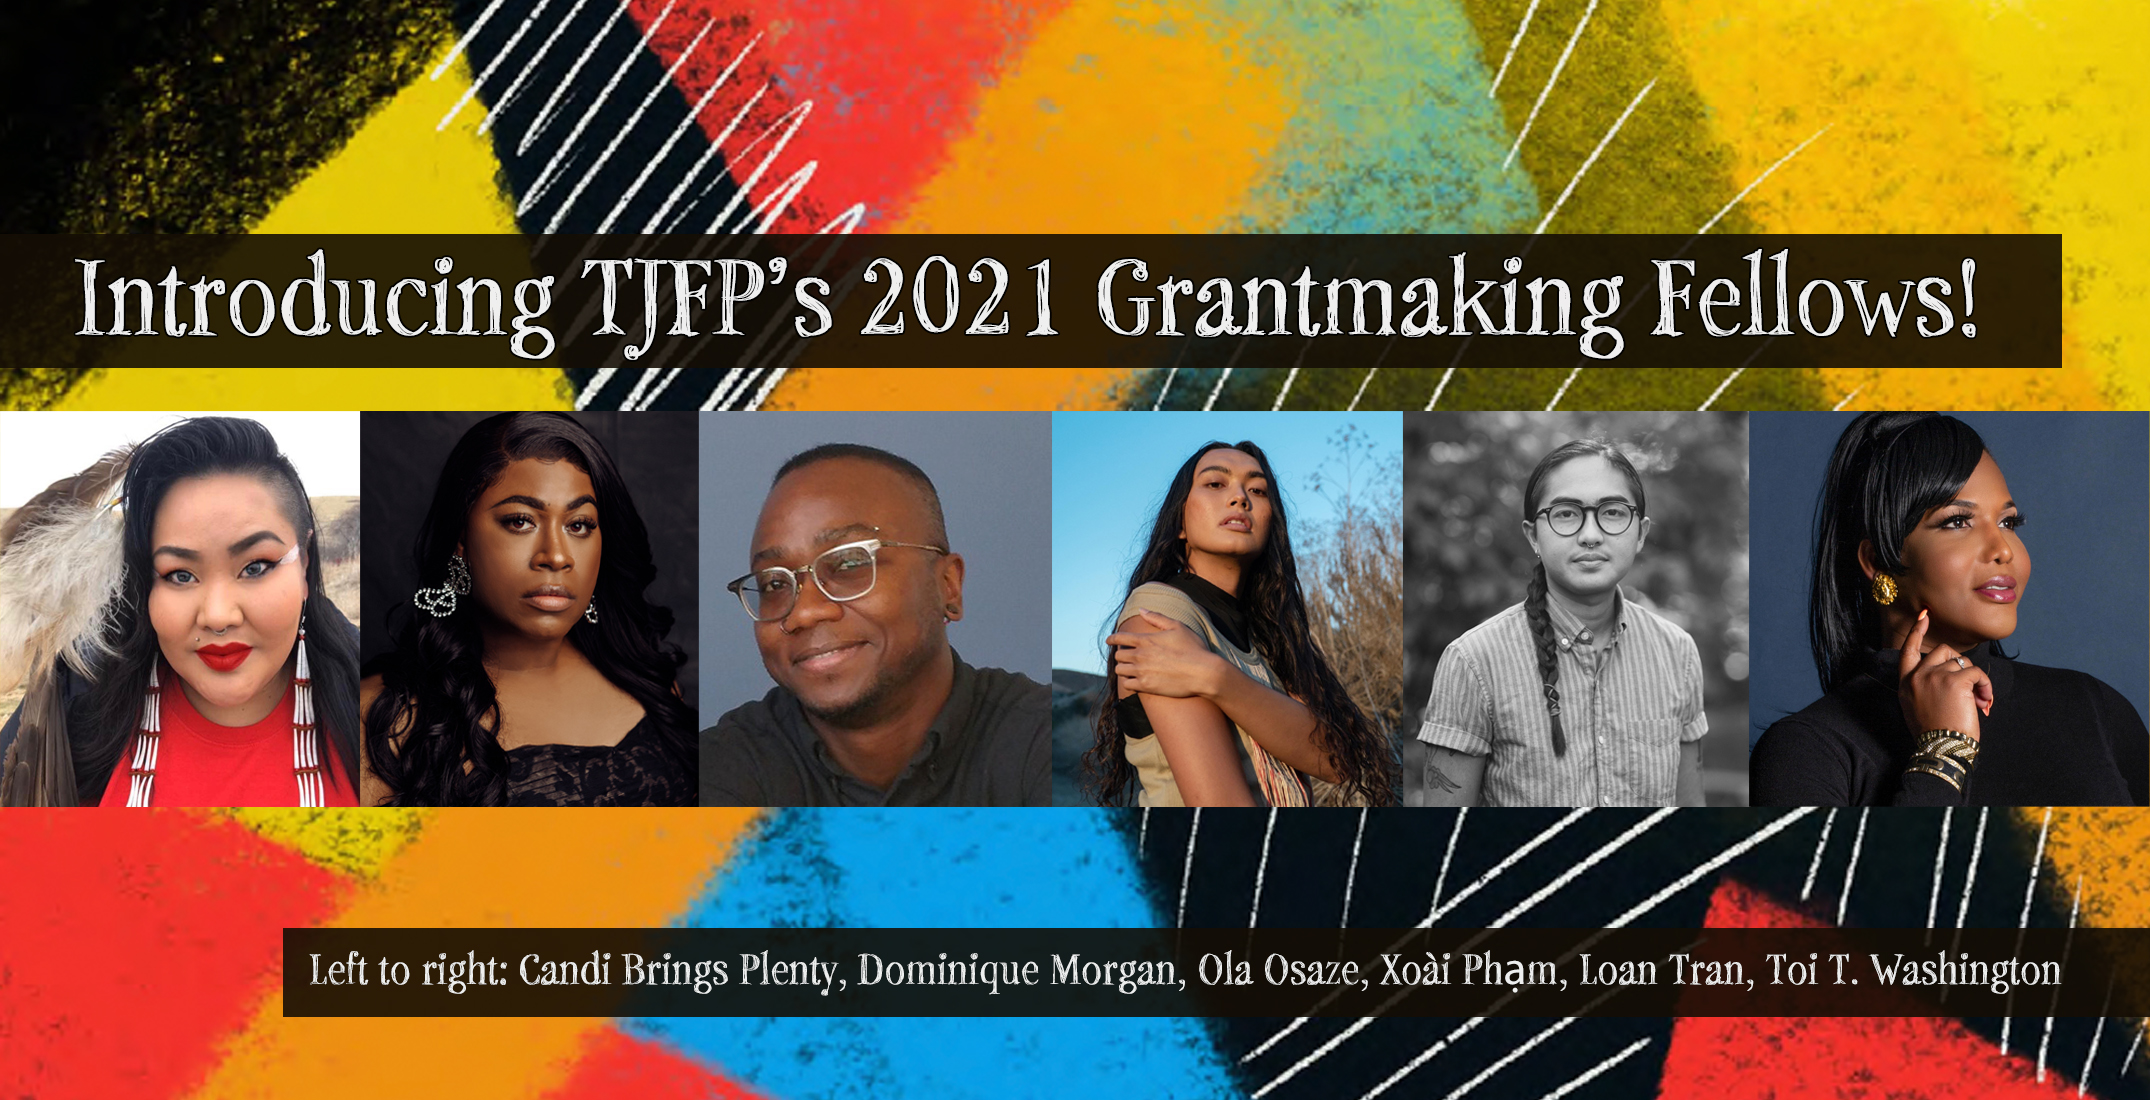 2021 Grantmaking Team